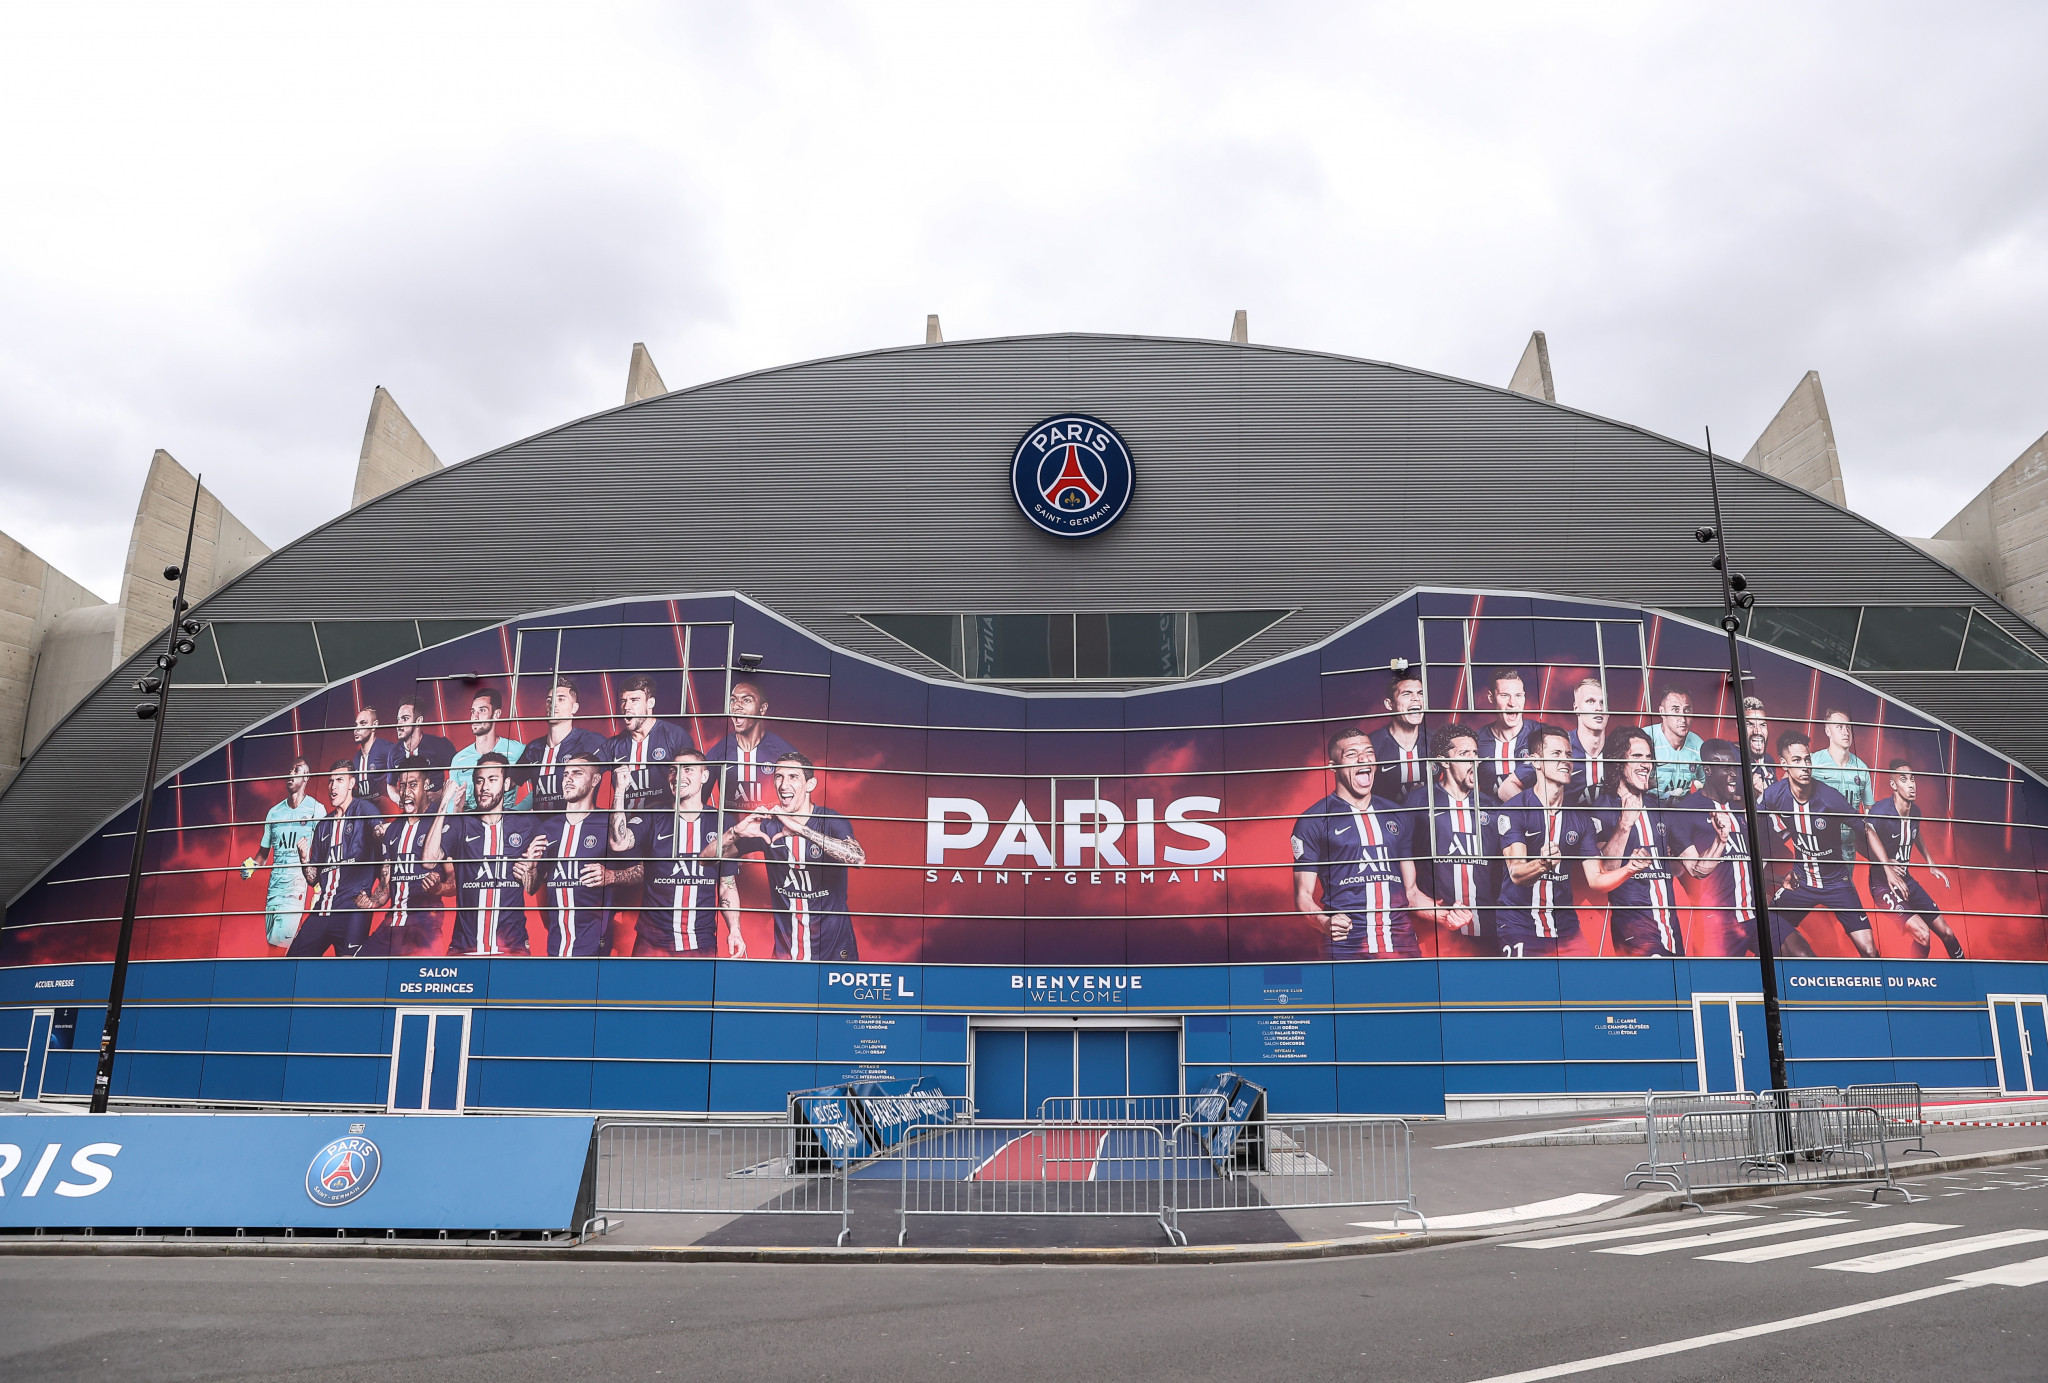 Paris 2024 confirm football venues for Olympic Games